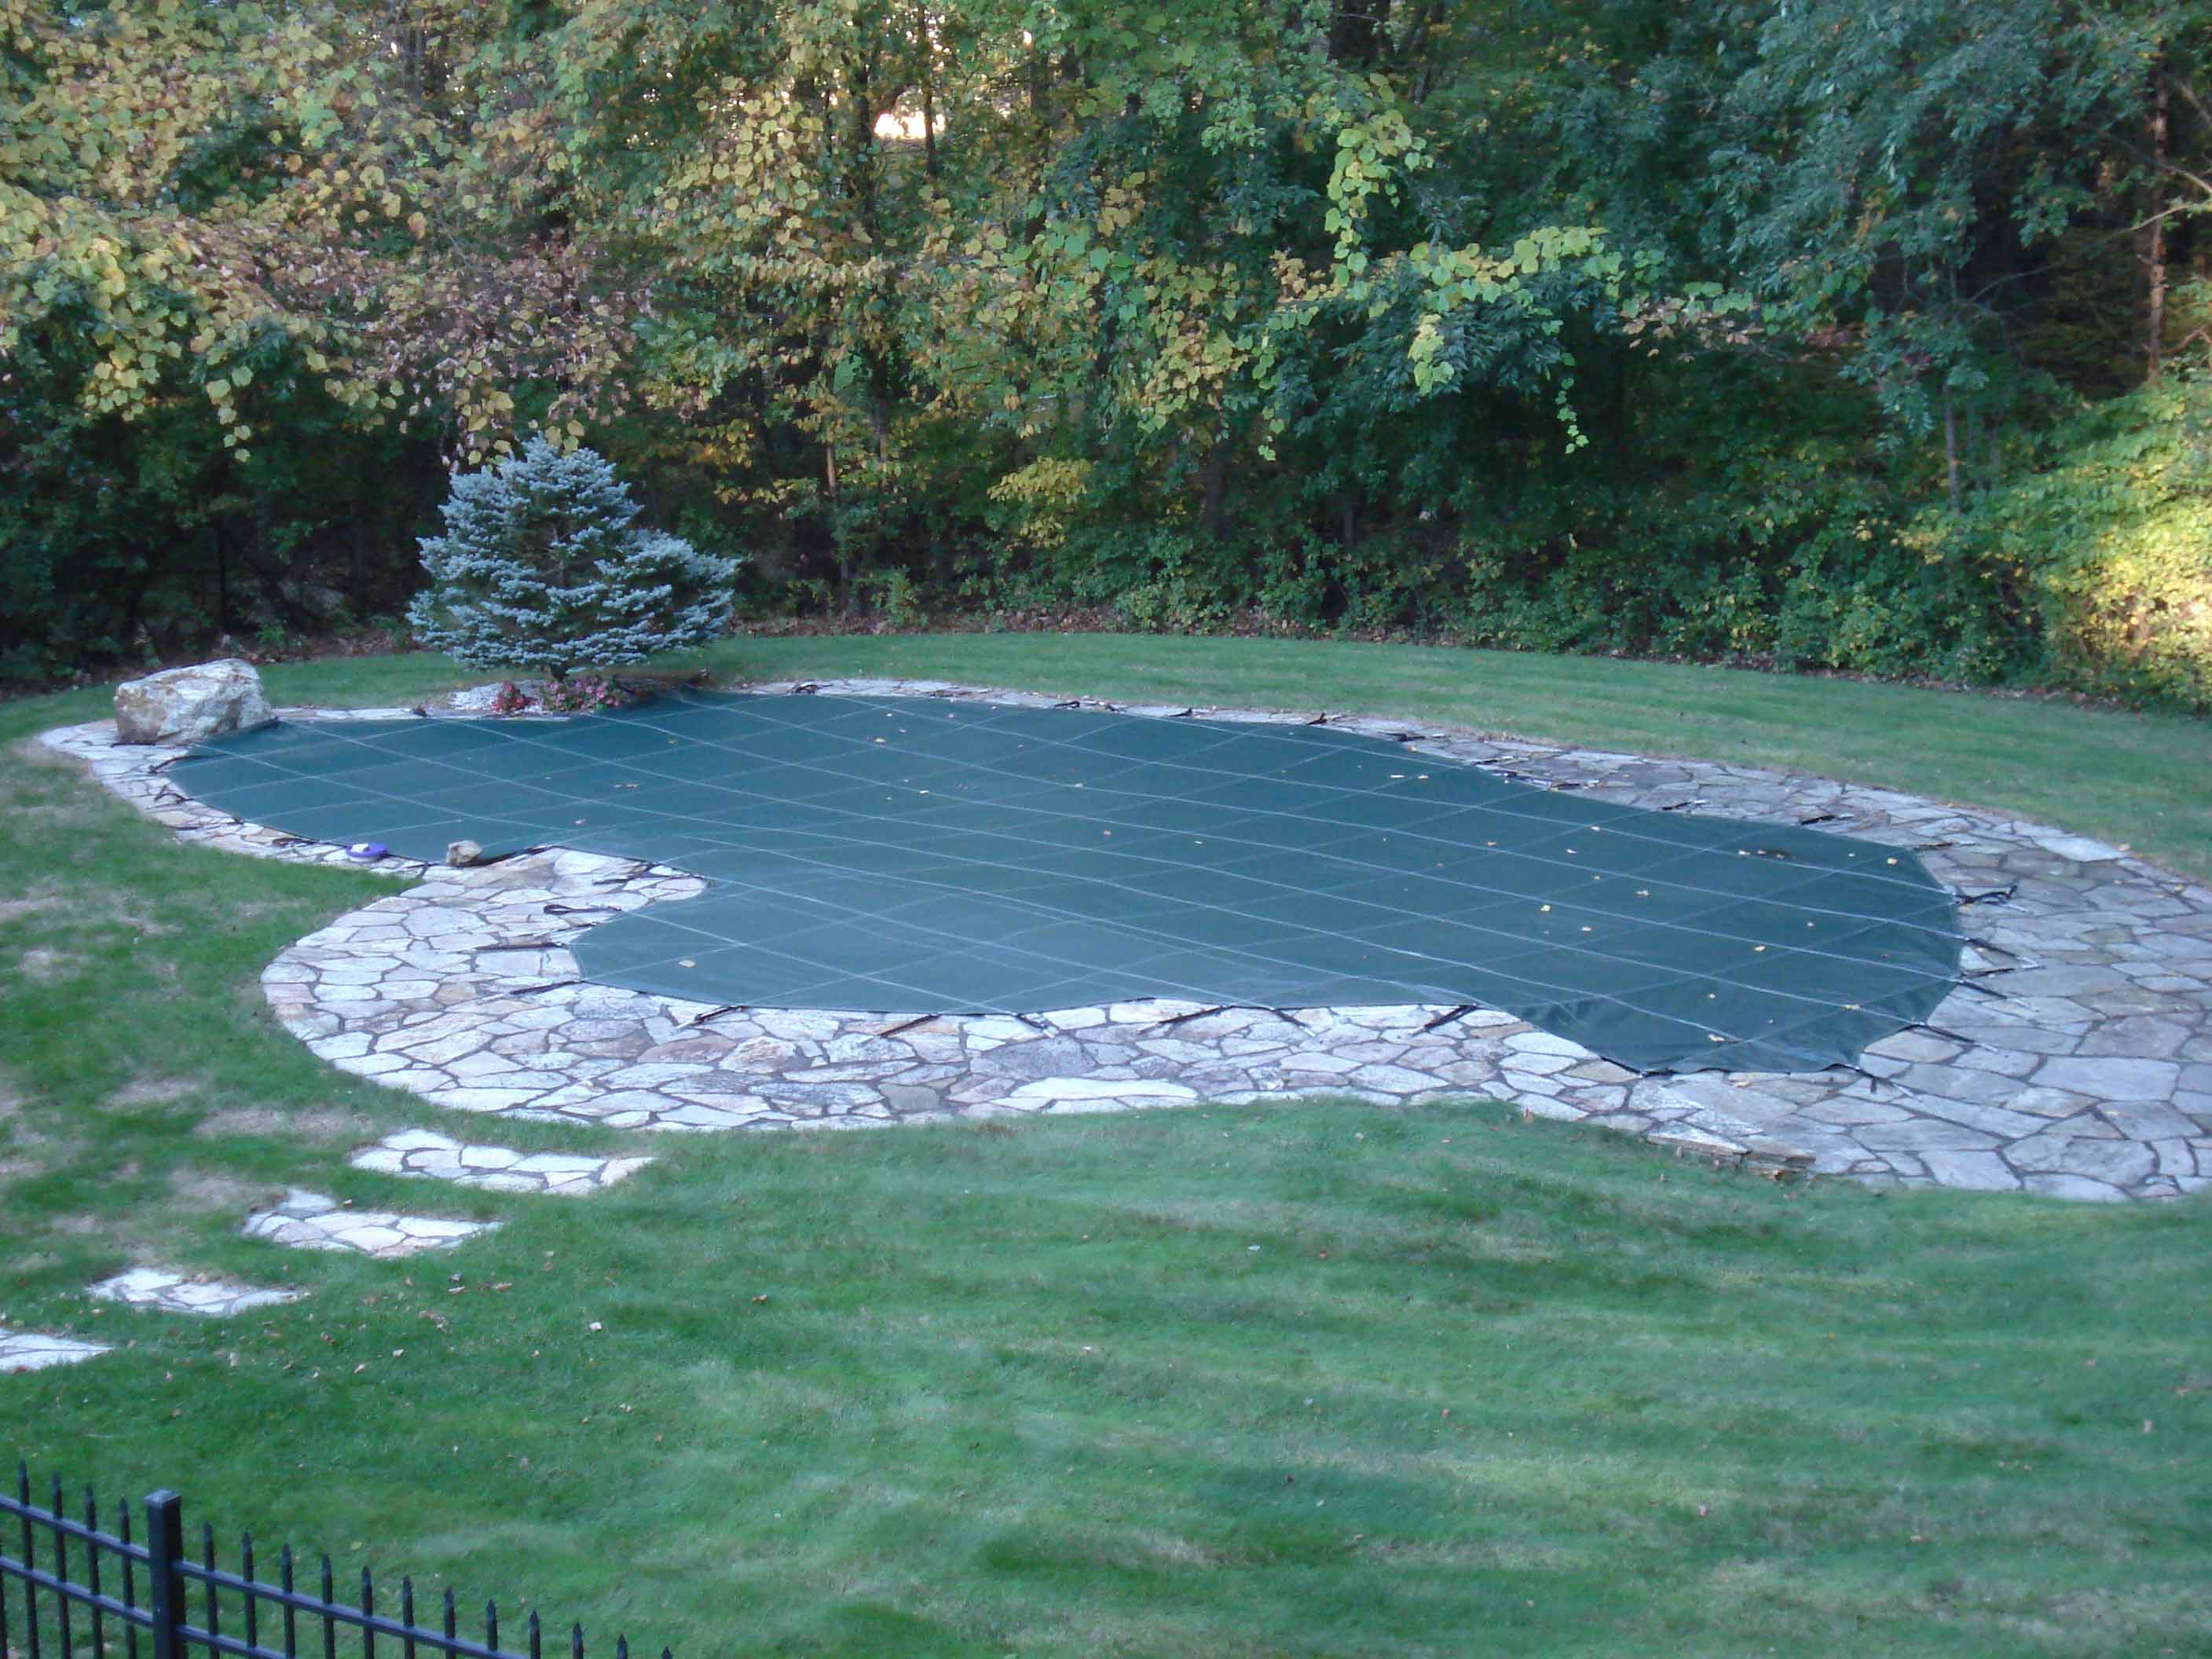 Another Custom Pool Cover